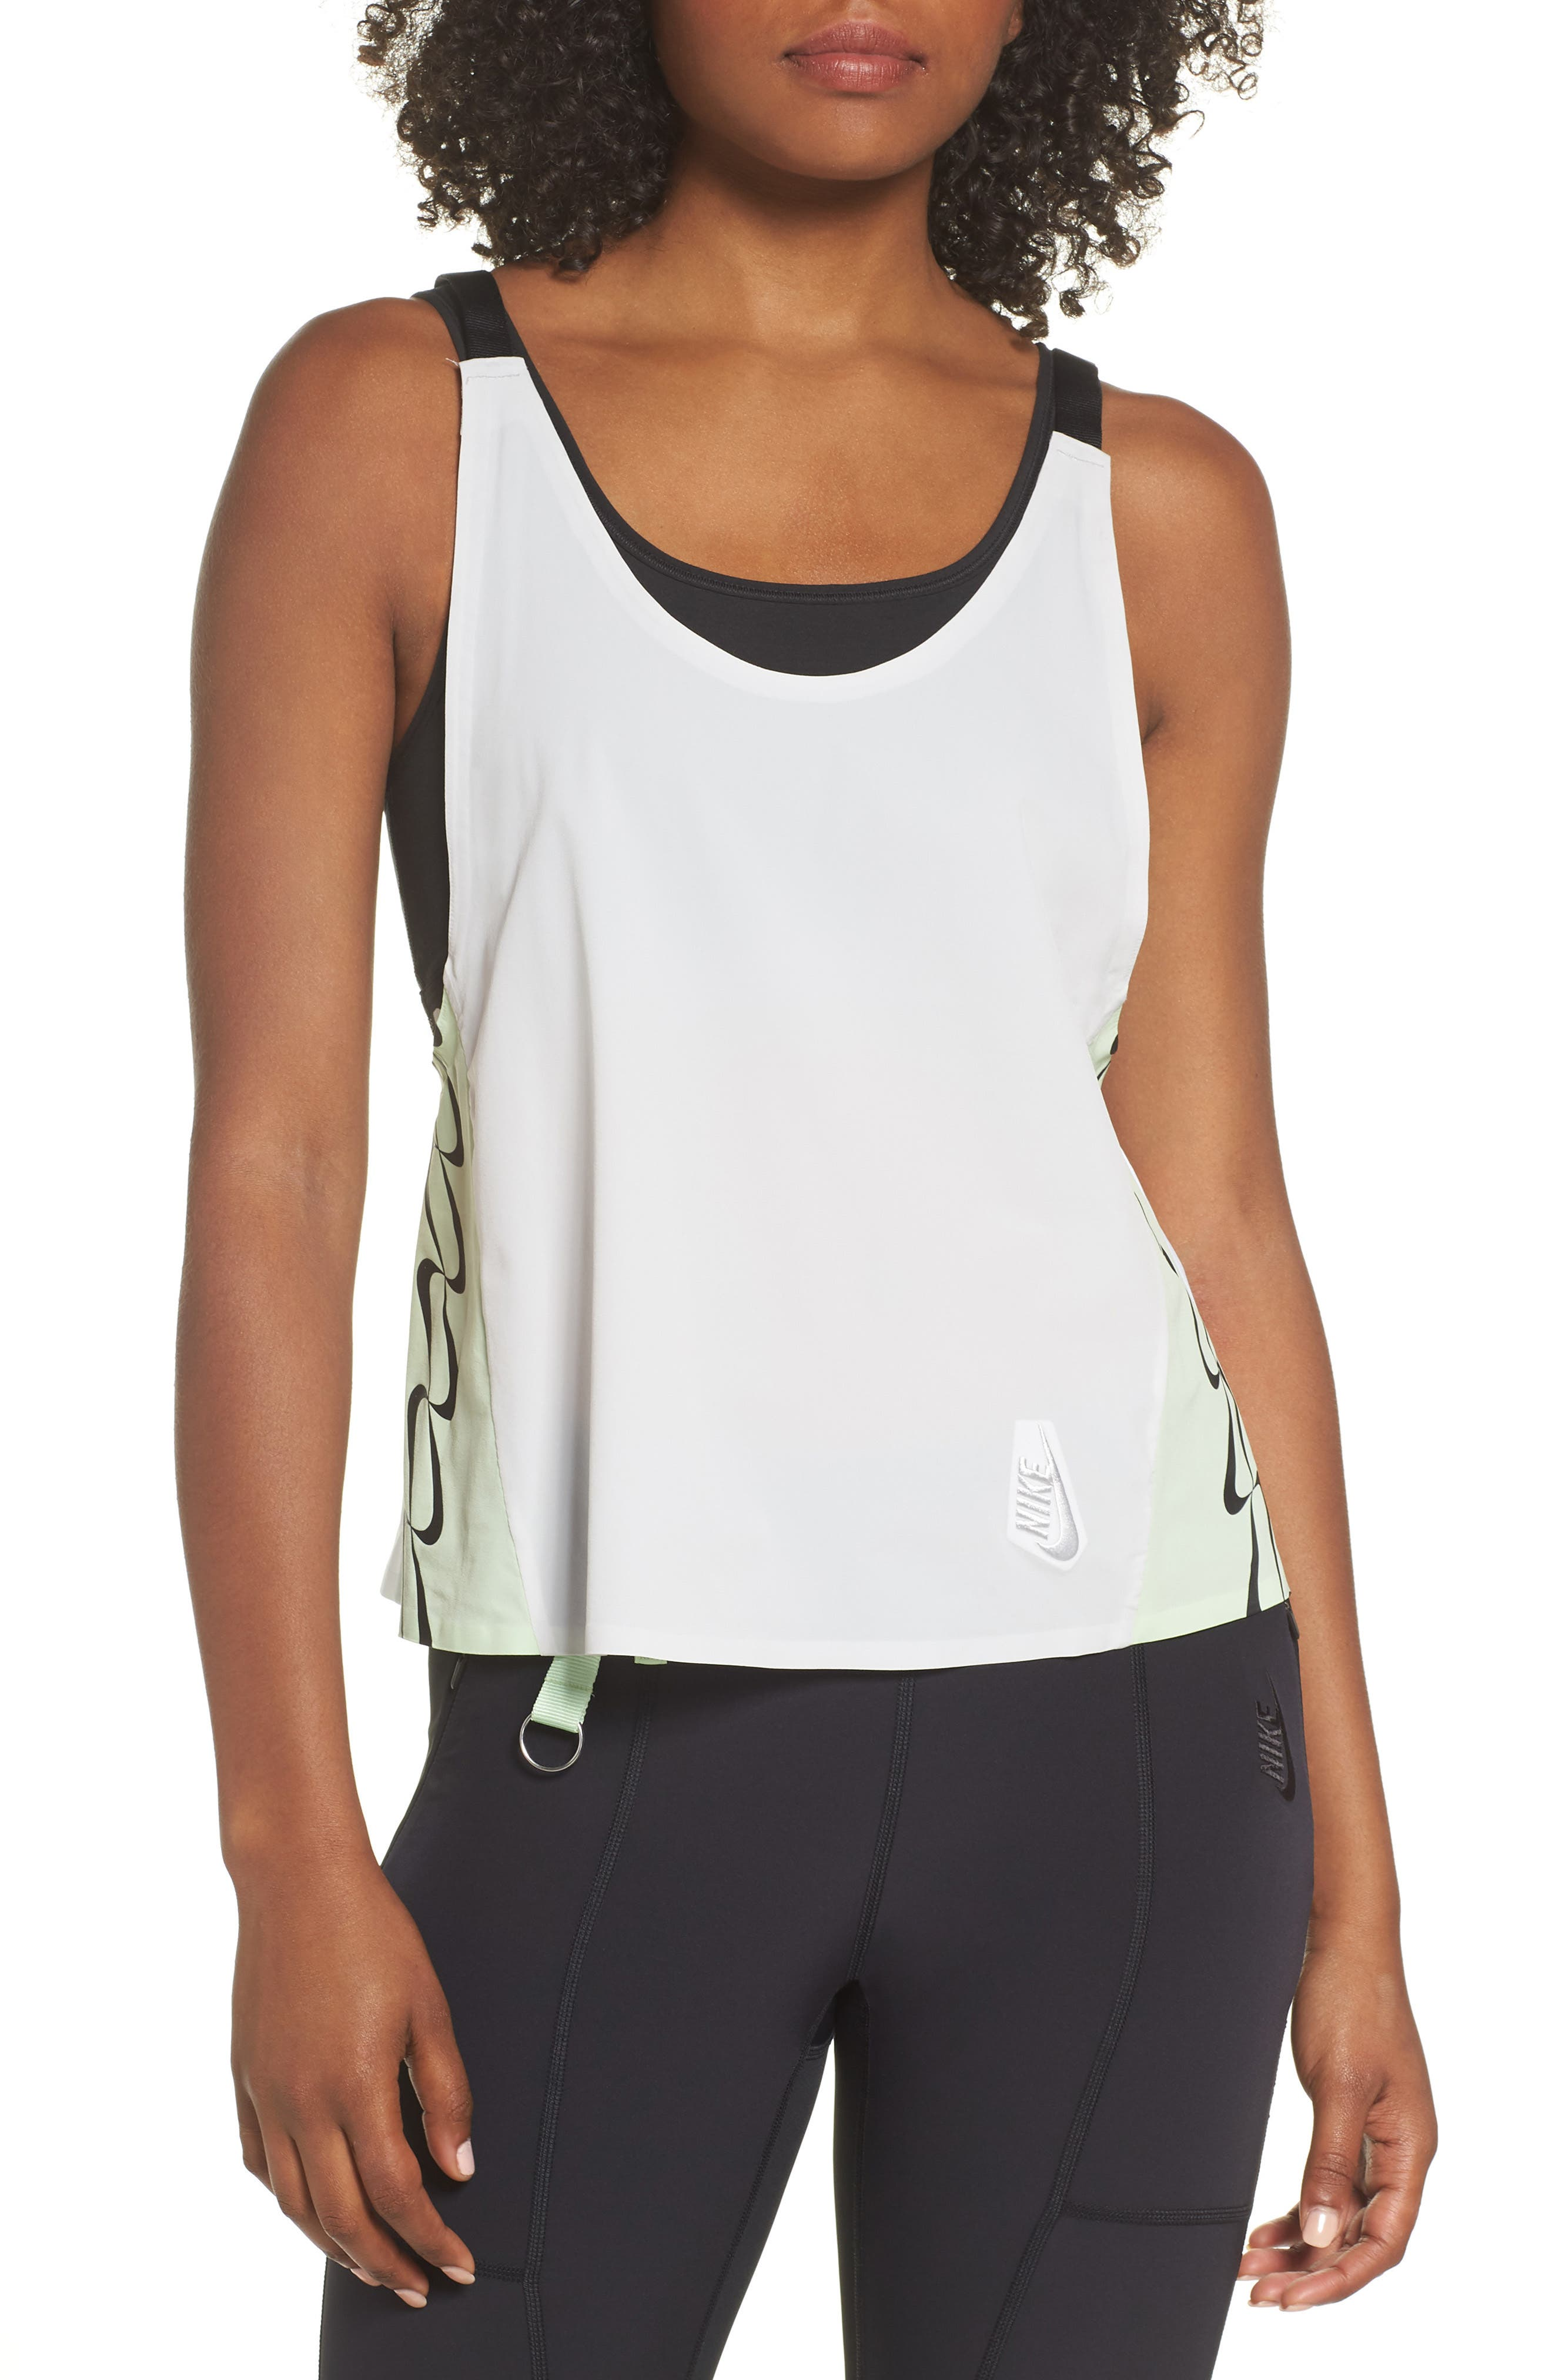 NRG Women's Colorblock Tank,                             Main thumbnail 1, color,                             Vast Grey/ White/ Vapor Green